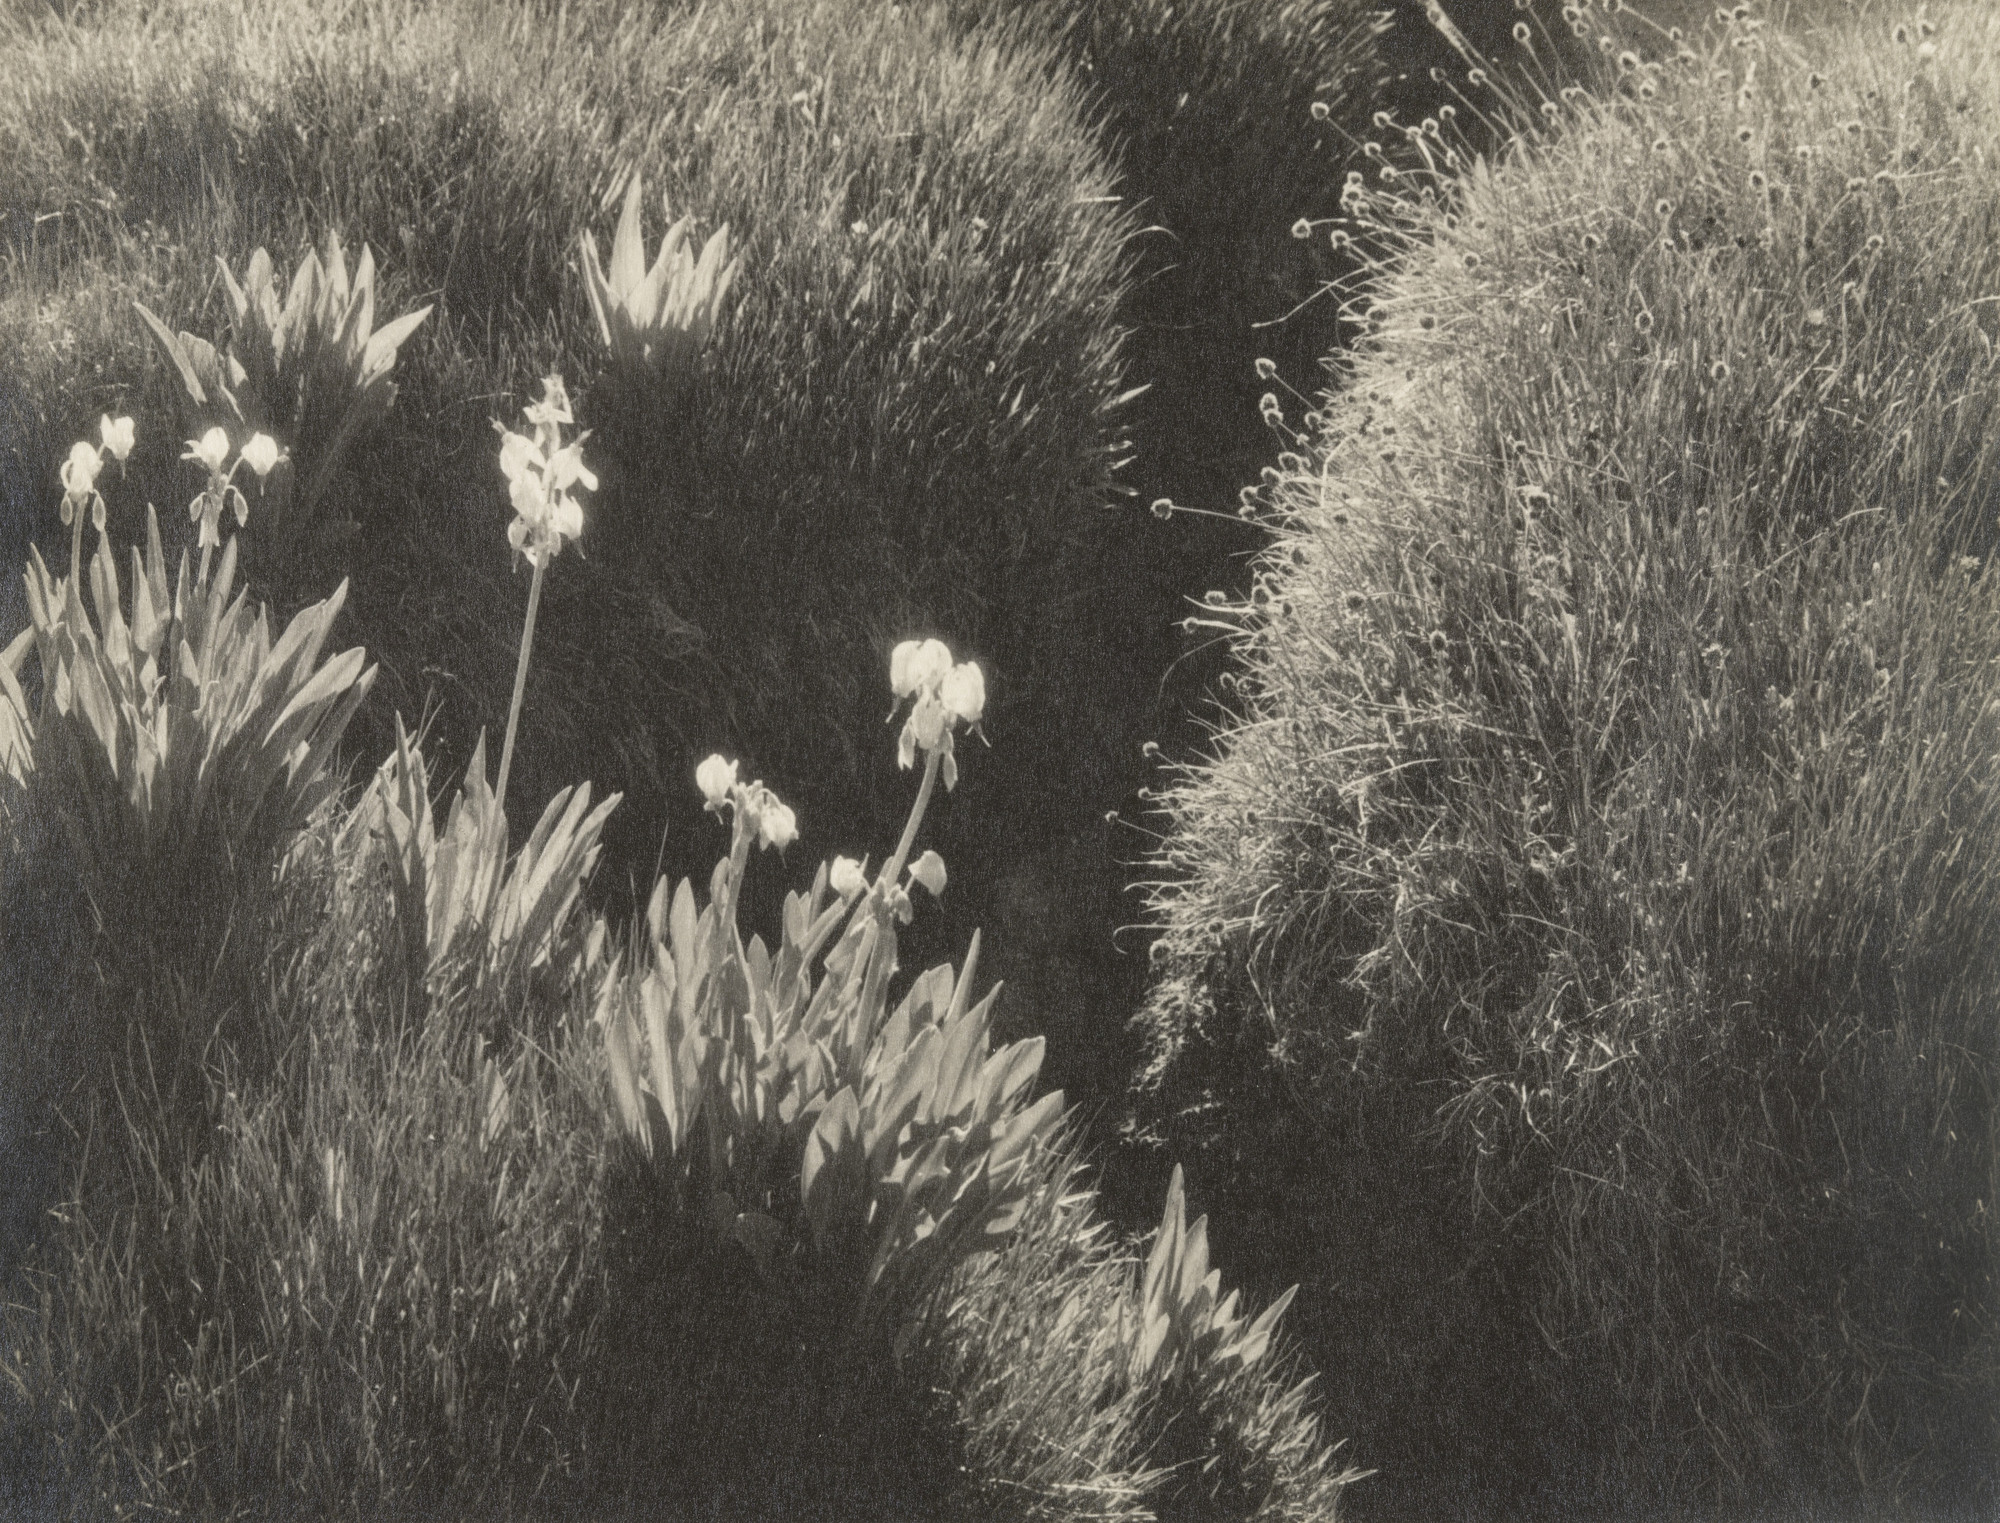 Ansel Adams. Sierra Meadow. 1930